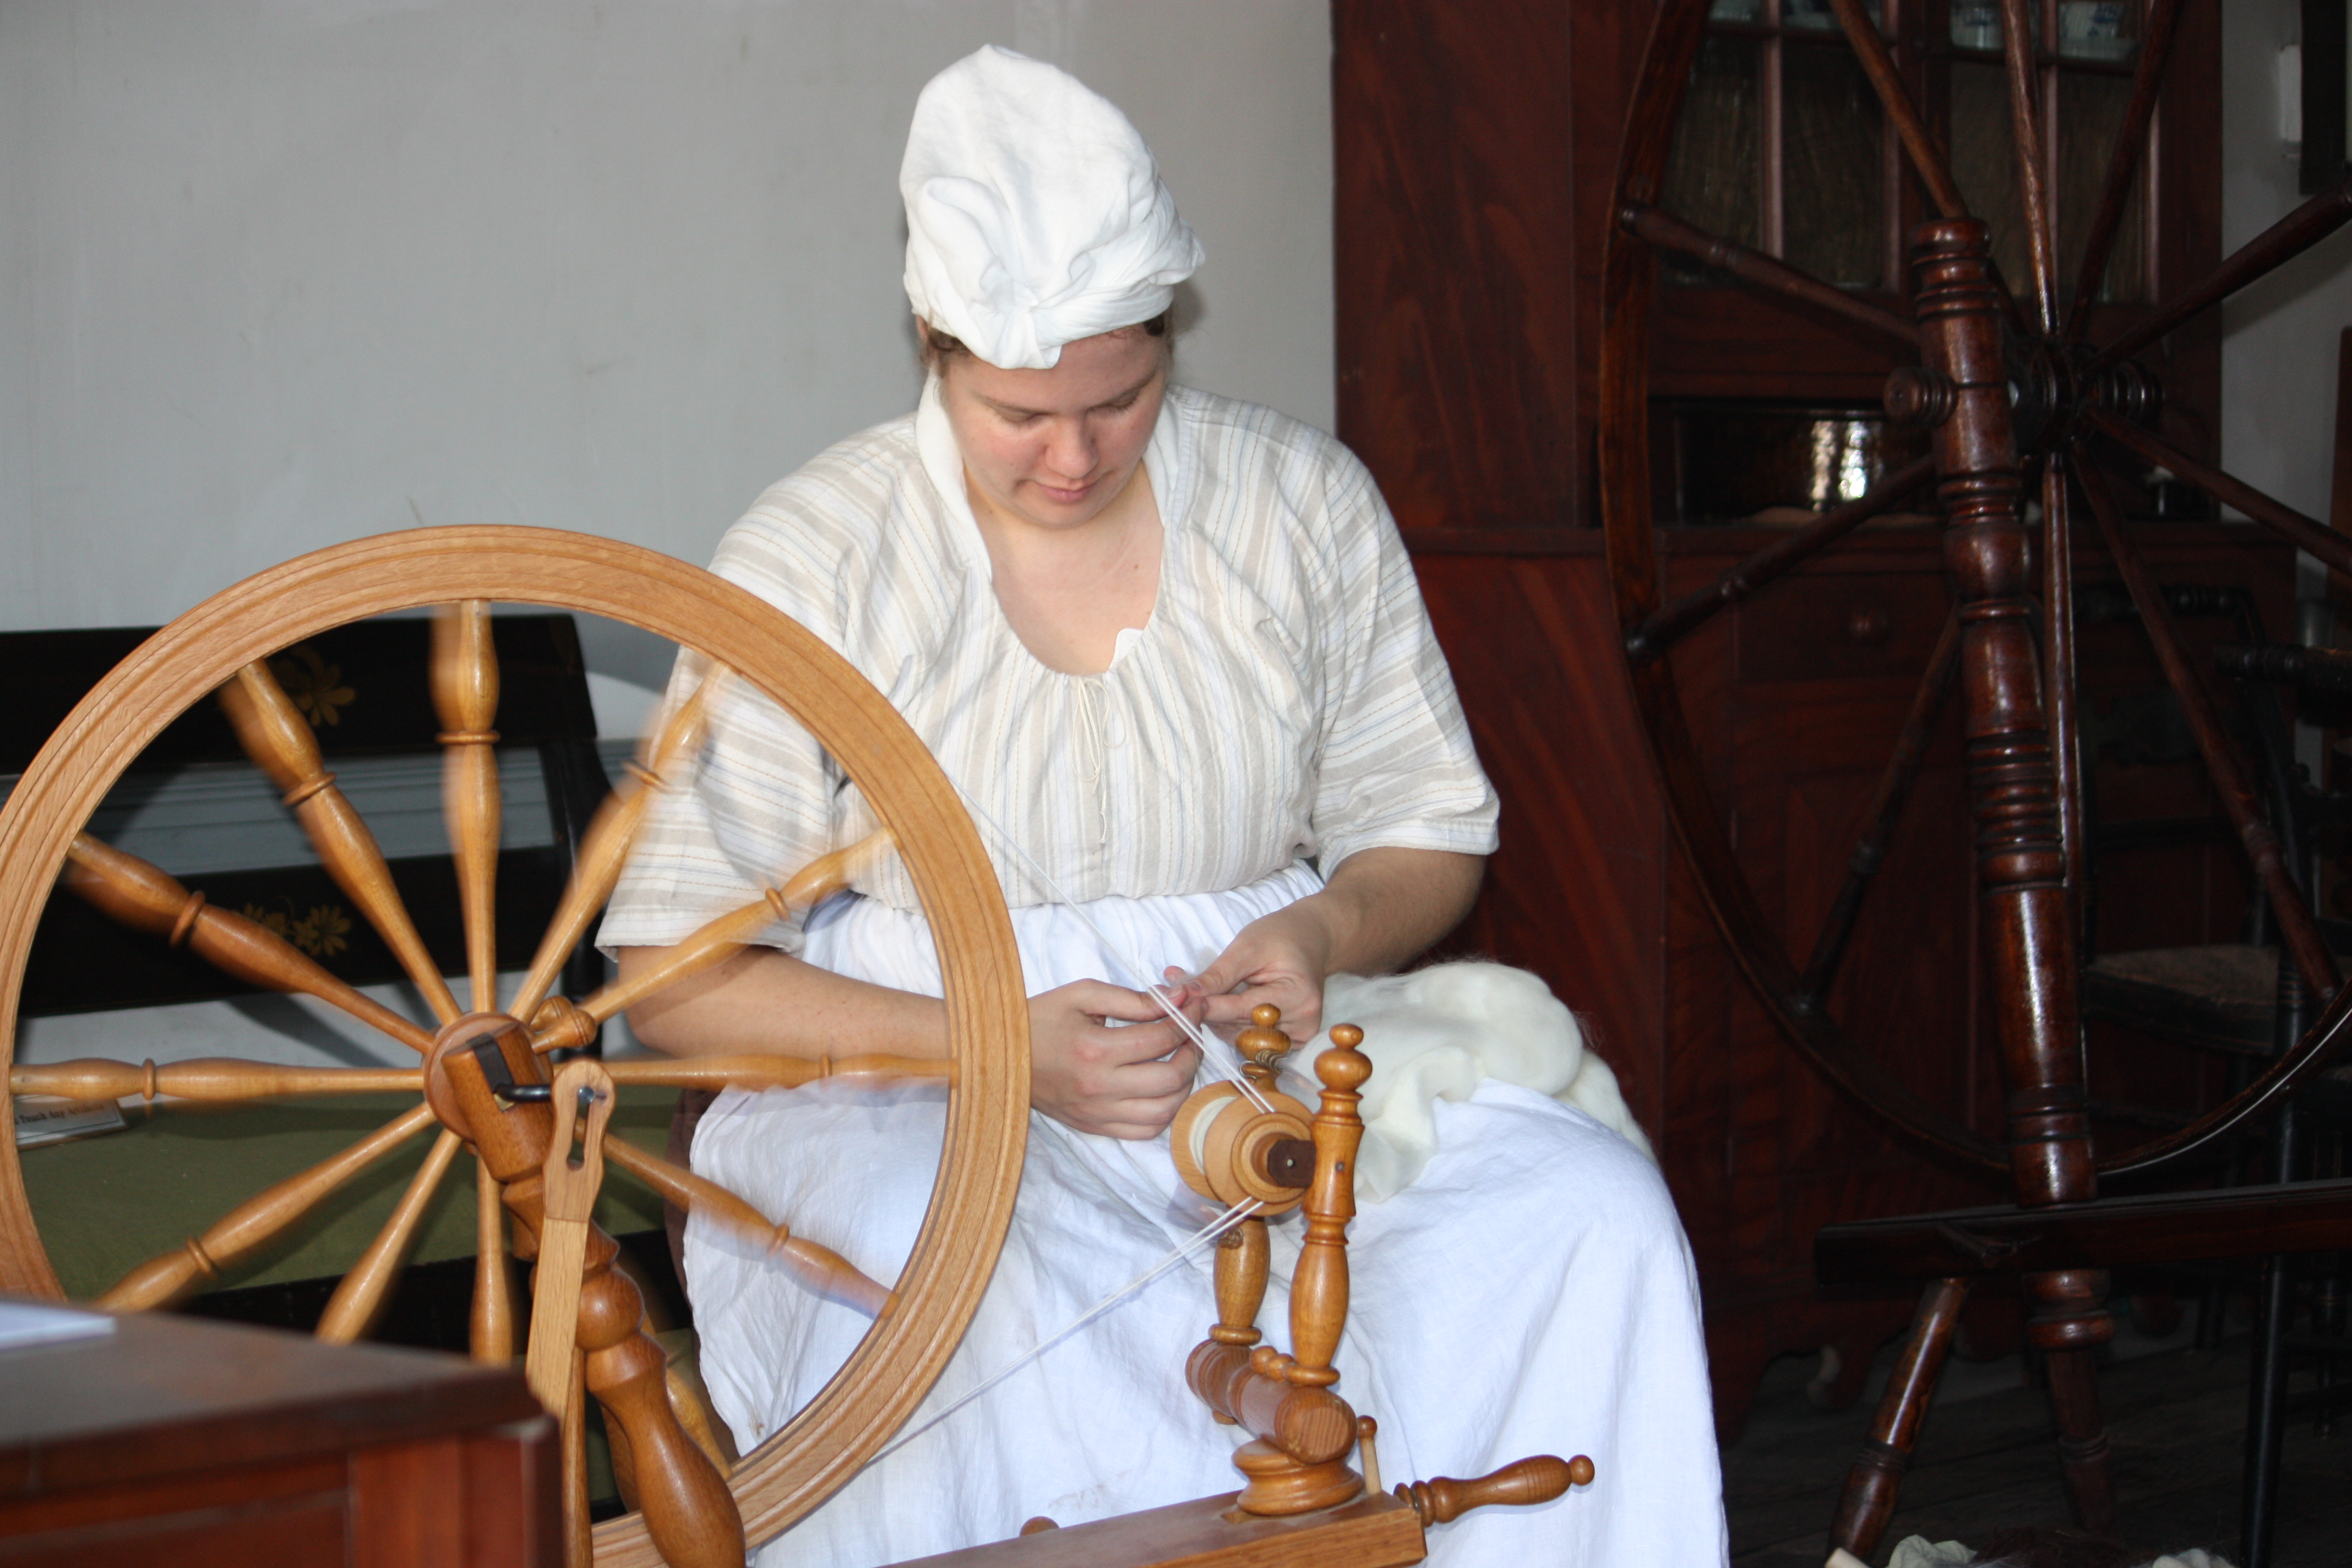 woman in period attire weaving with a spinning wheel